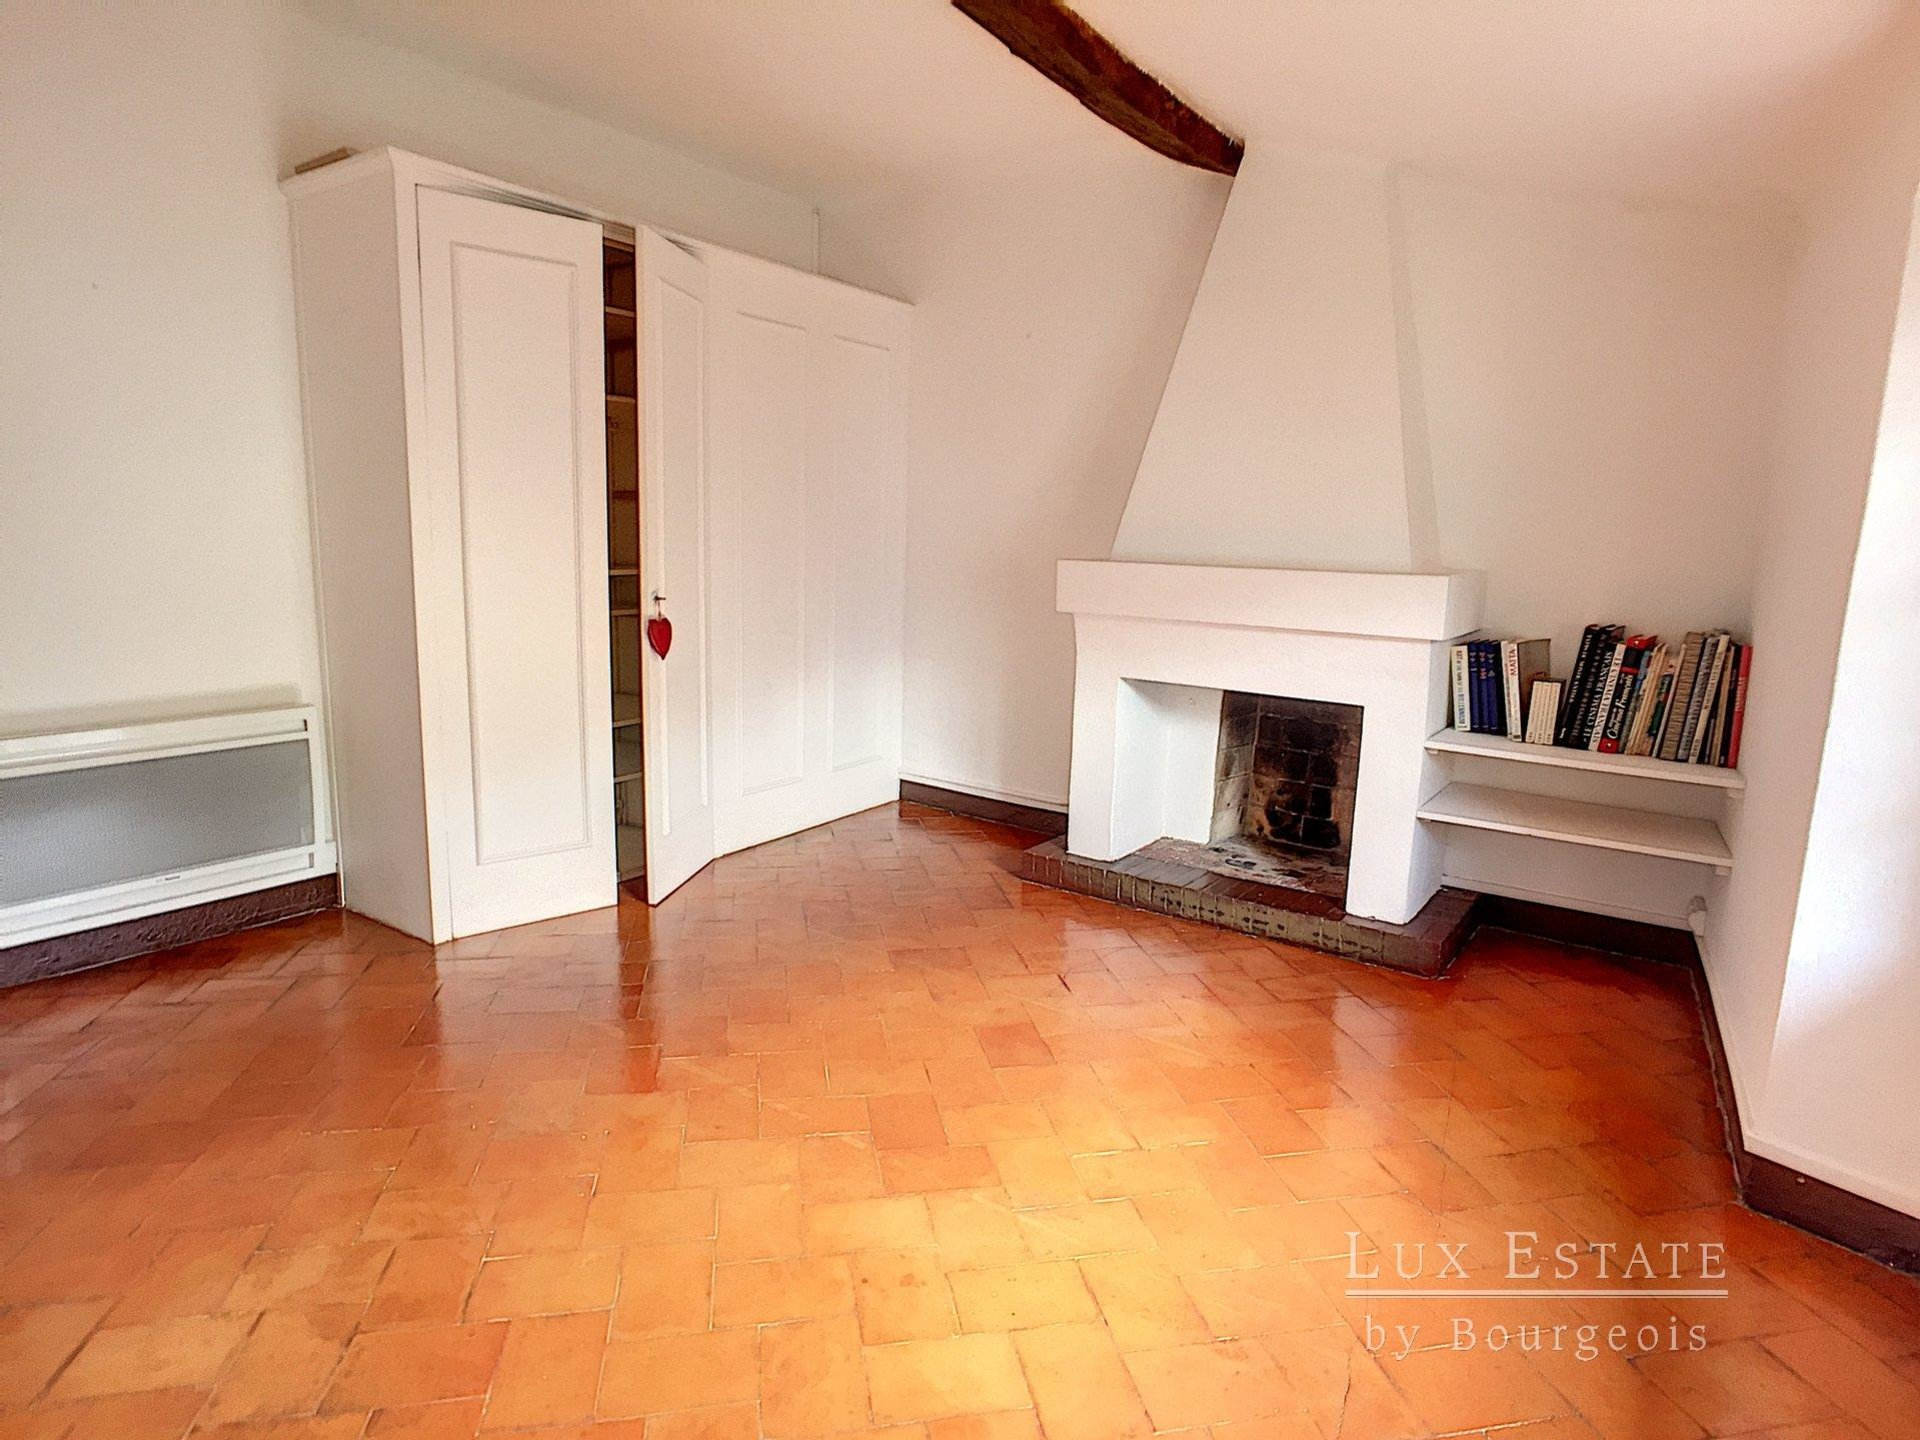 3-rooms flat for rent in Mougins village